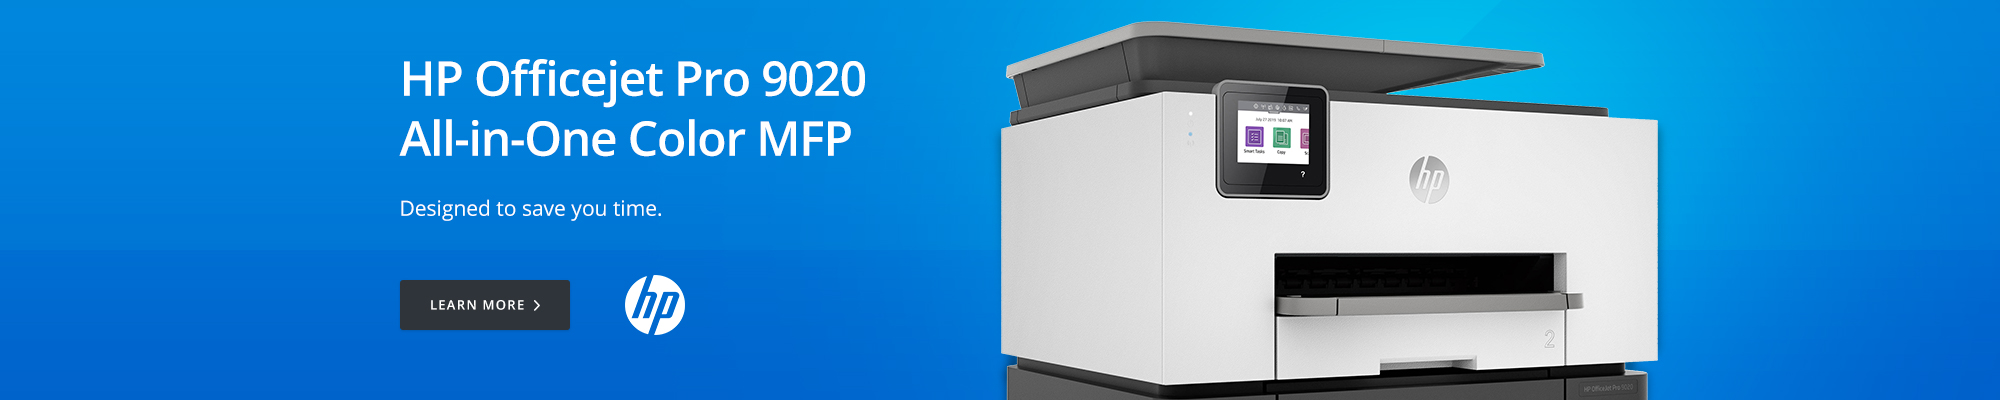 HP Officejet Pro 9020 All-in-One Color MFP